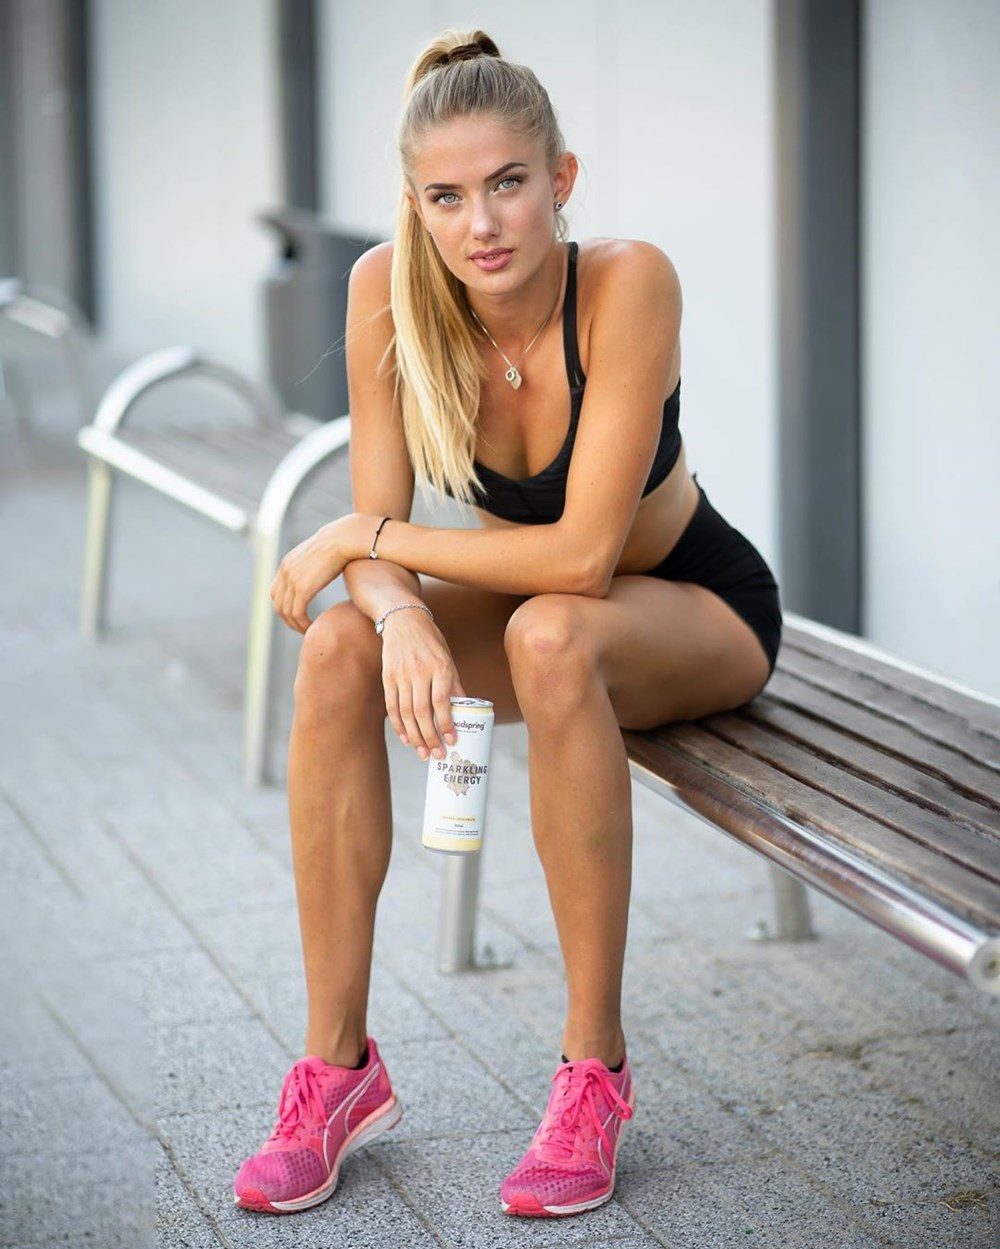 Hot Athlete Alica Schmidt Pics - Alica Schmidt Net Worth, Pics, Wallpapers, Career and Biography